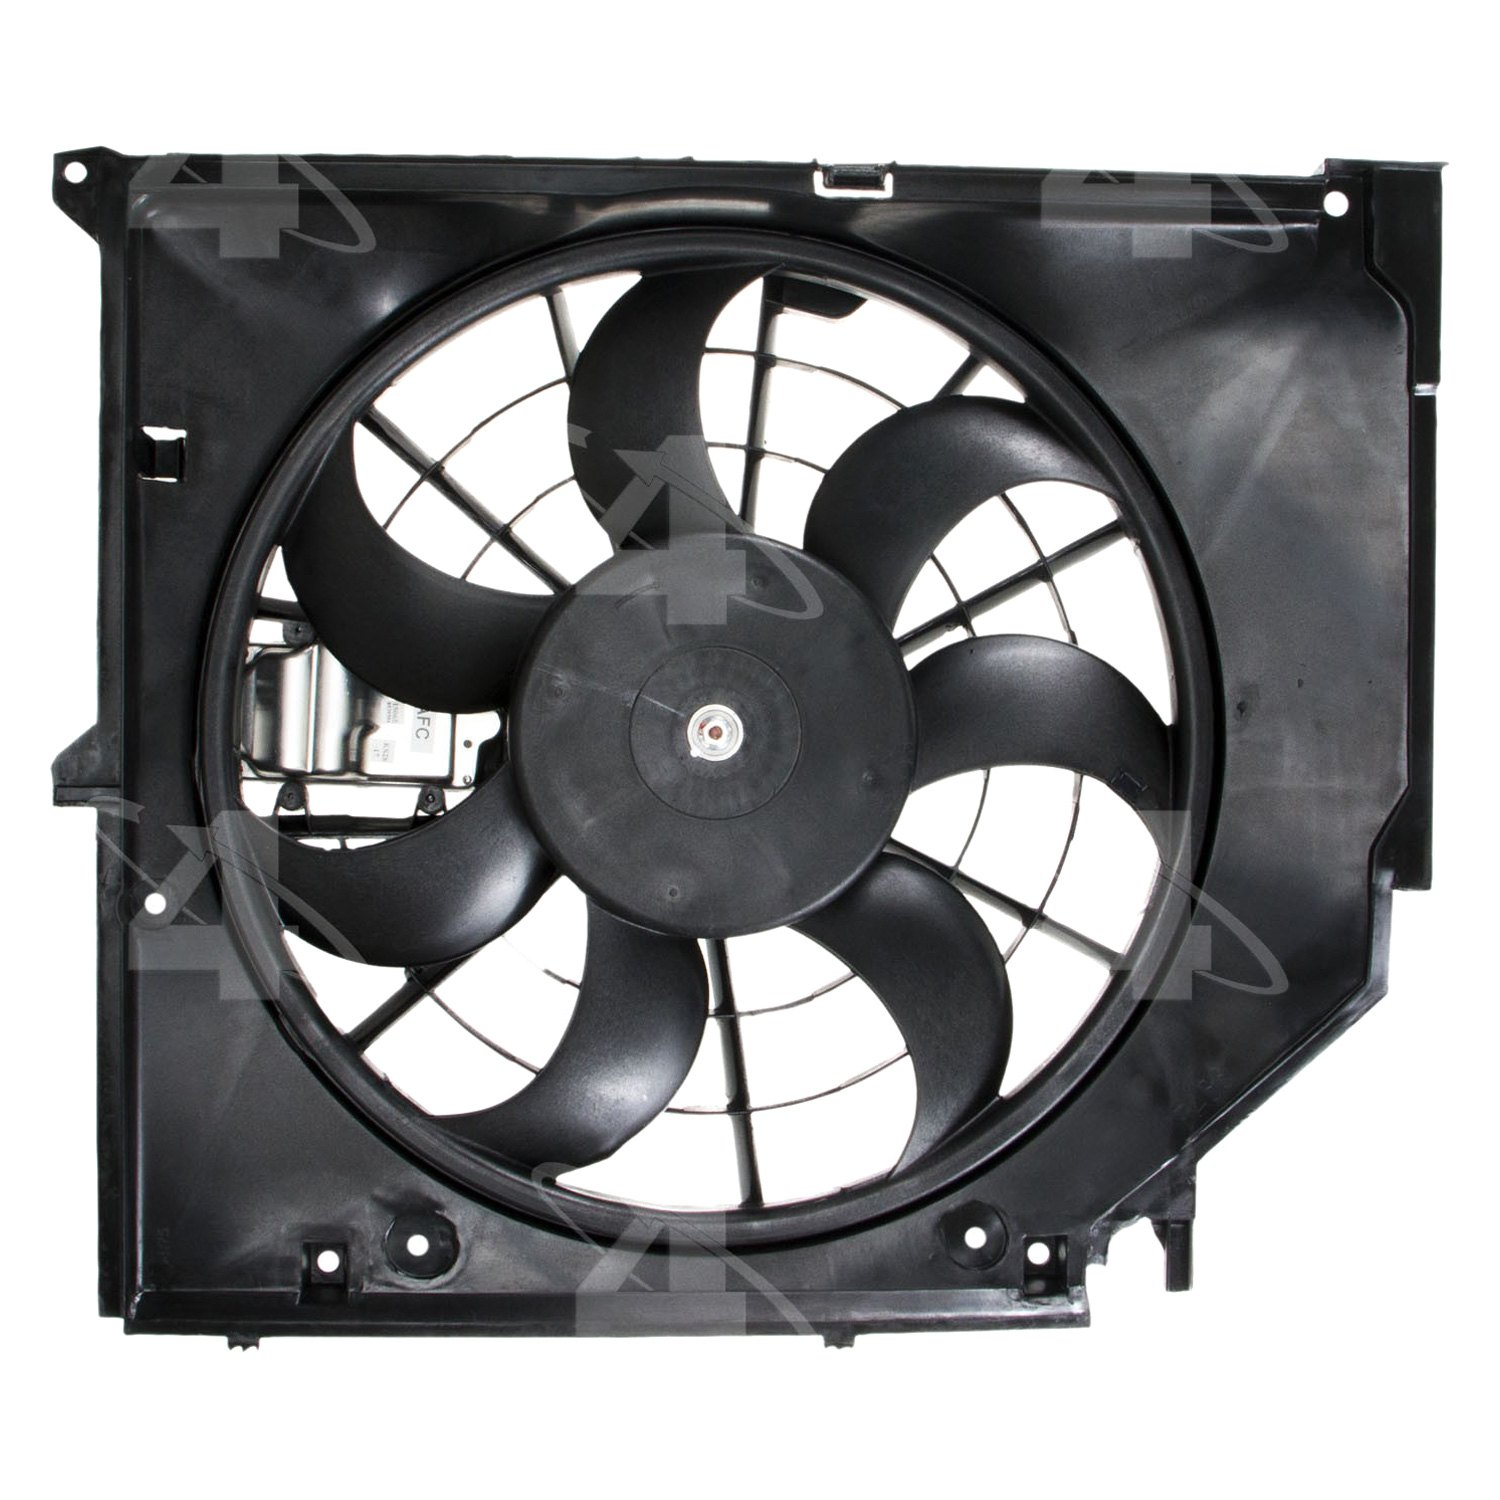 Motor Cooling Blades : Four seasons bmw series engine cooling fan